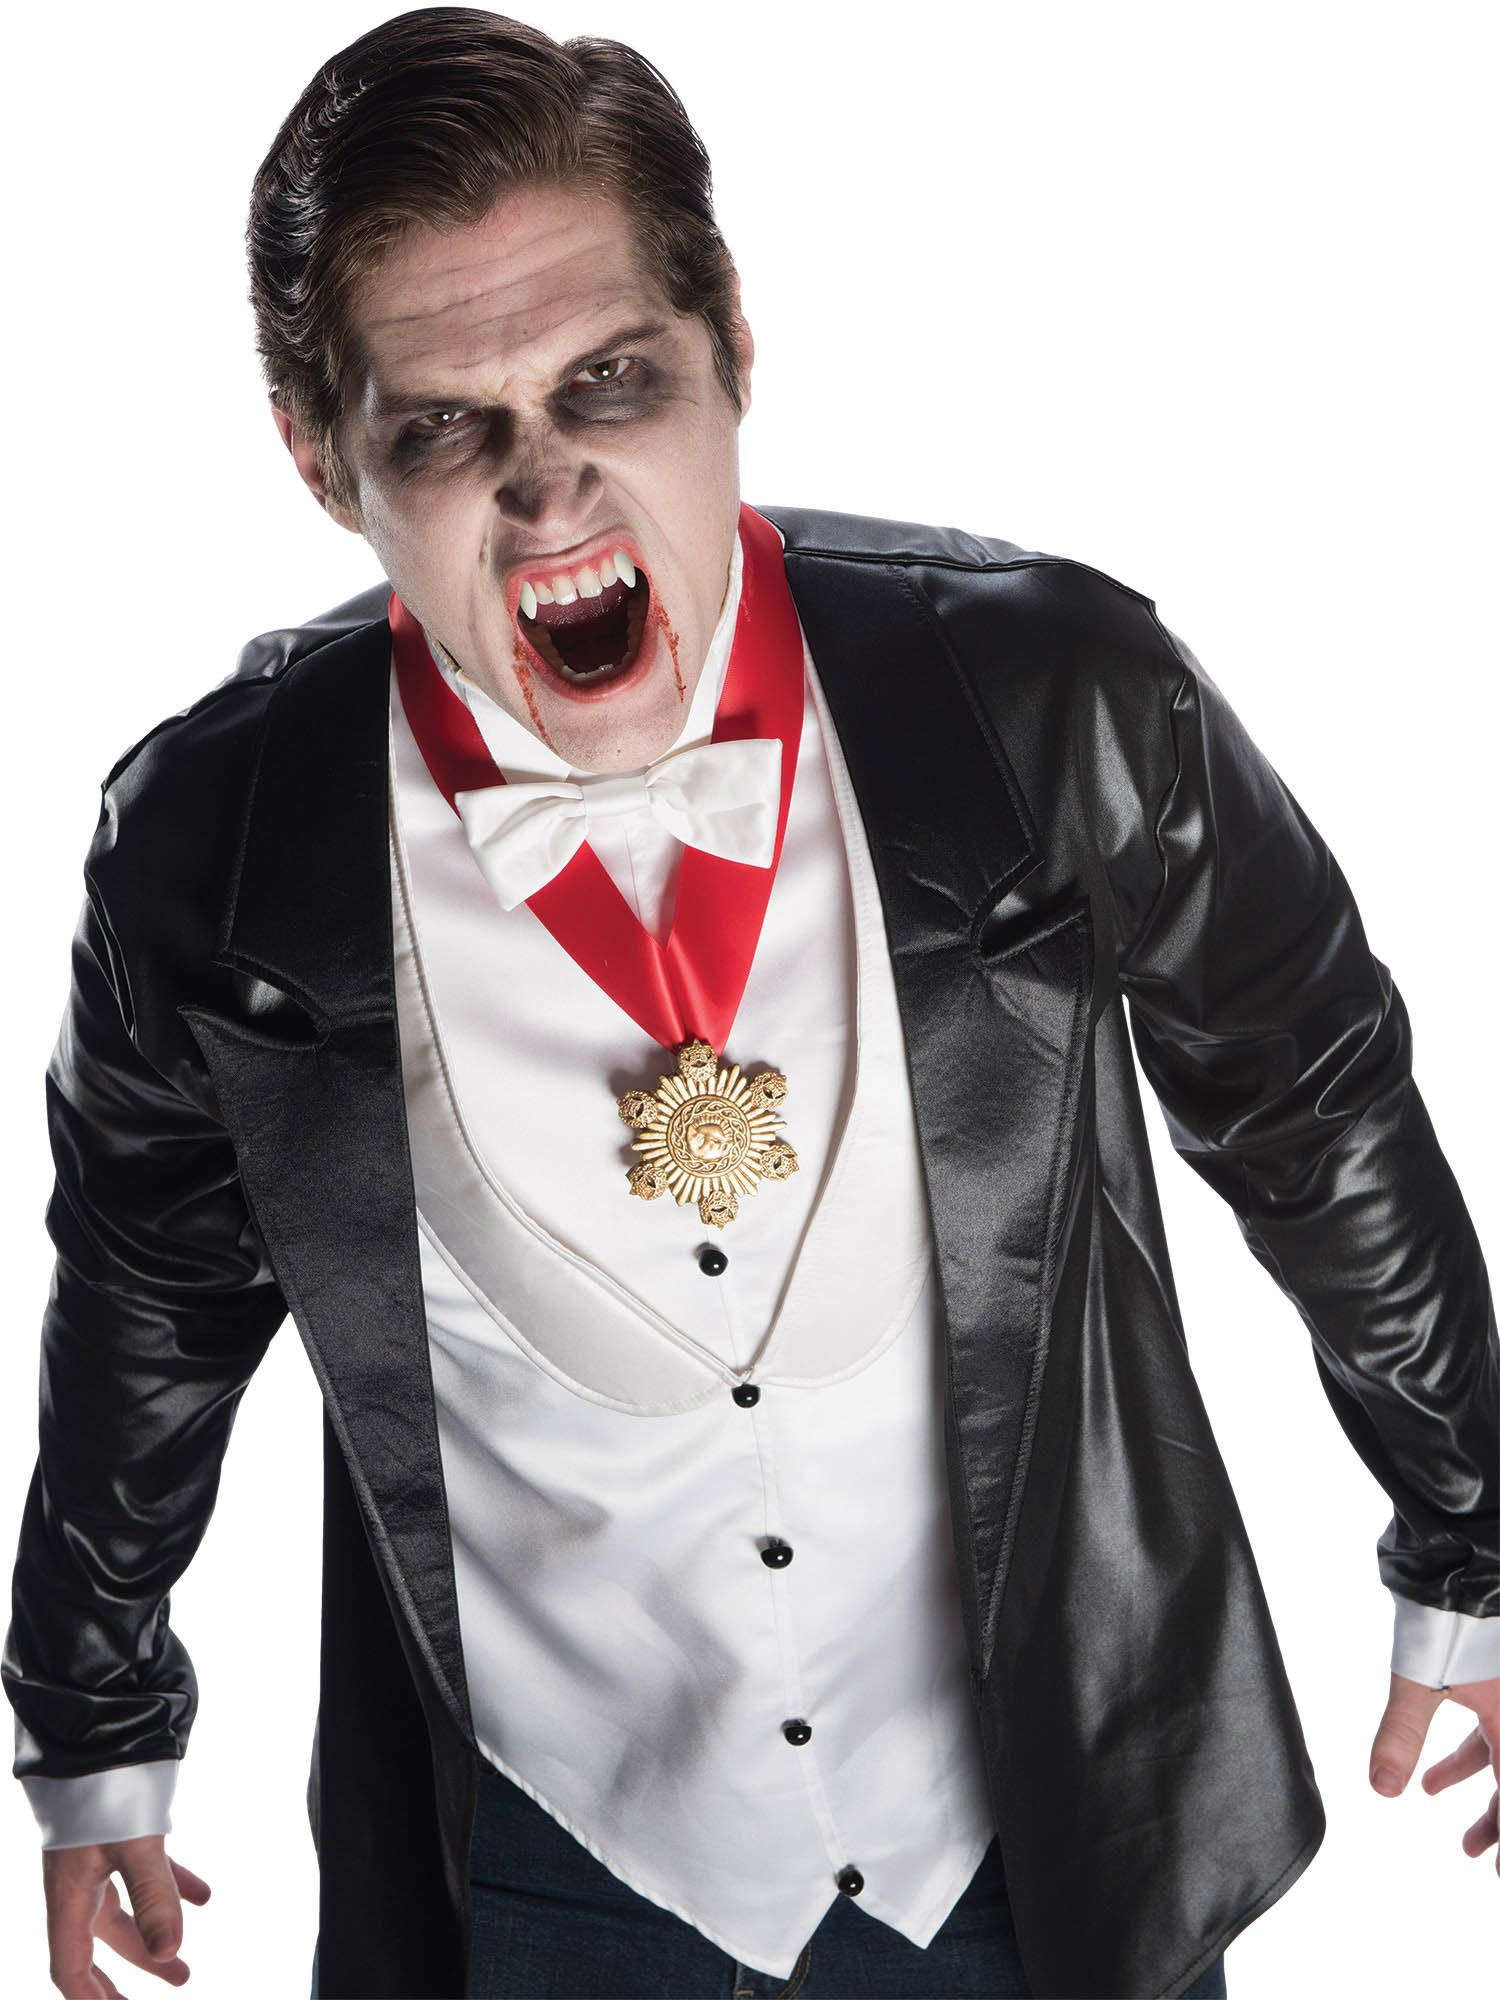 Universal Monsters Dracula Premium Fangs Costumes For 2019 Wholesale Halloween Costumes